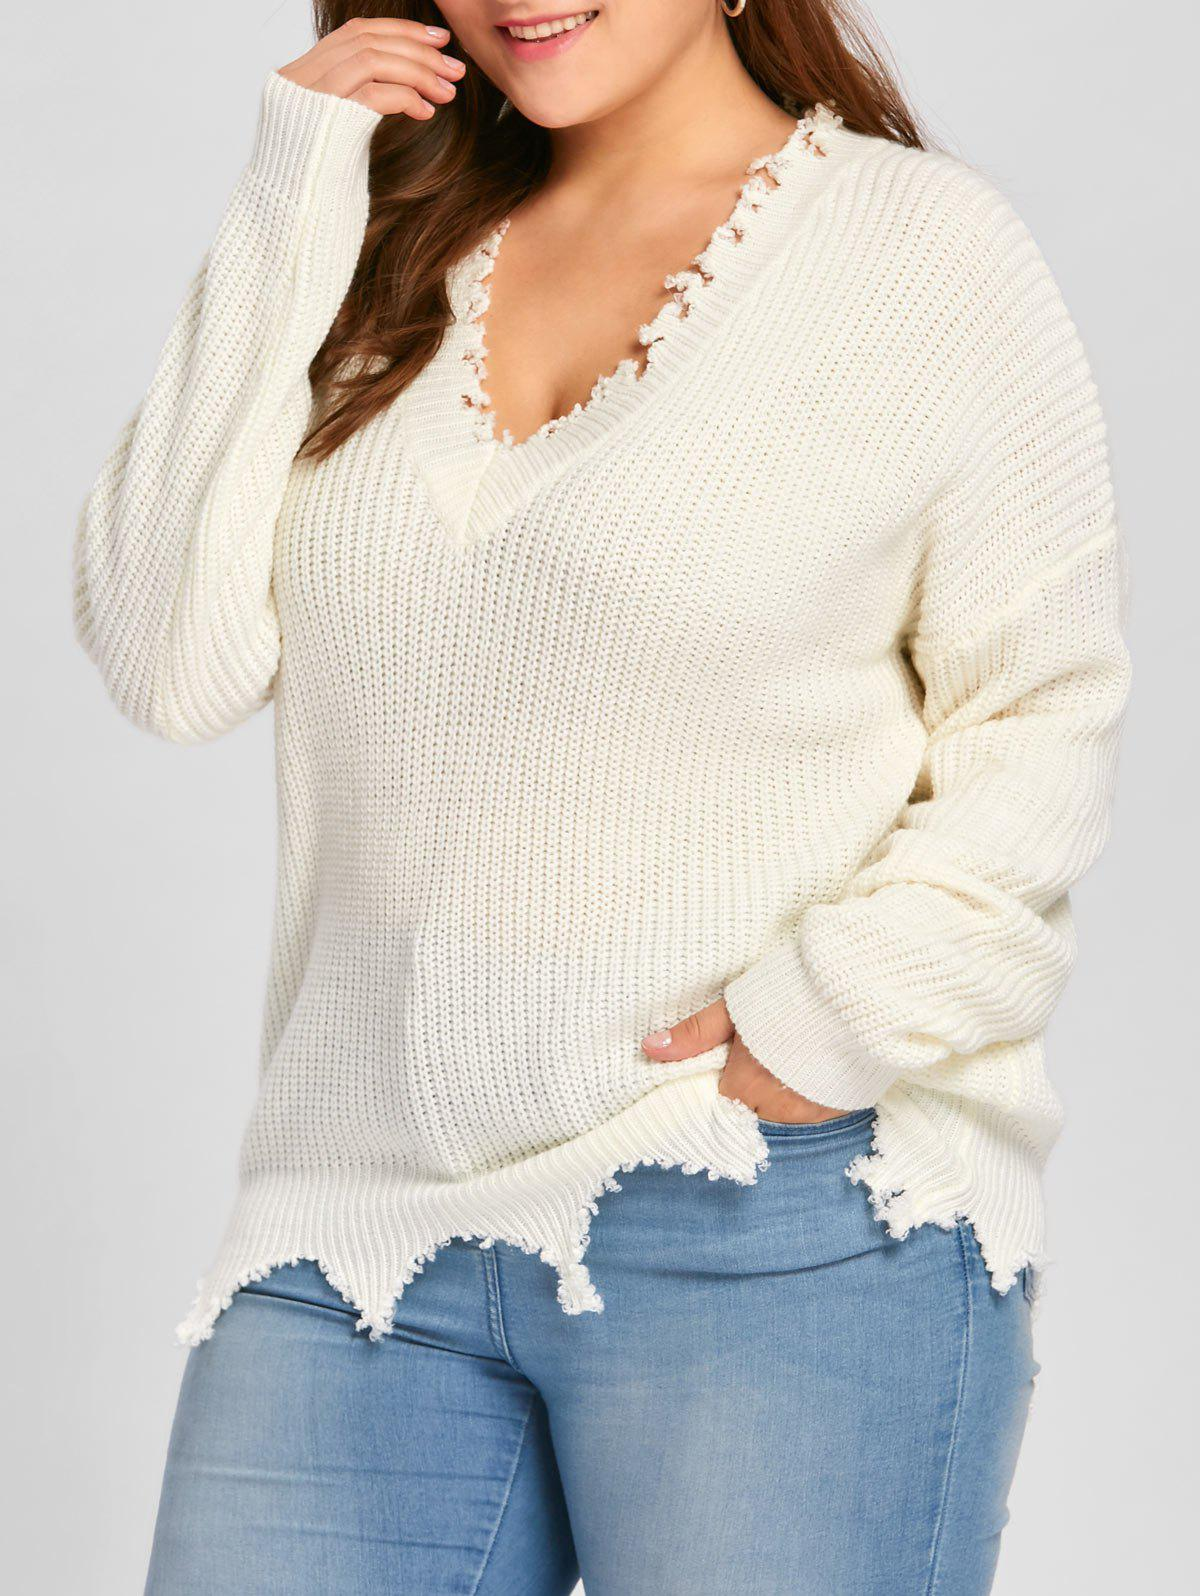 Plus Size V Neck Ribbed Raw Hem SweaterWOMEN<br><br>Size: 2XL; Color: OFF-WHITE; Type: Pullovers; Material: Acrylic; Sleeve Length: Full; Collar: V-Neck; Style: Casual; Season: Fall,Spring,Winter; Pattern Type: Solid; Weight: 0.7000kg; Package Contents: 1 x Sweater;